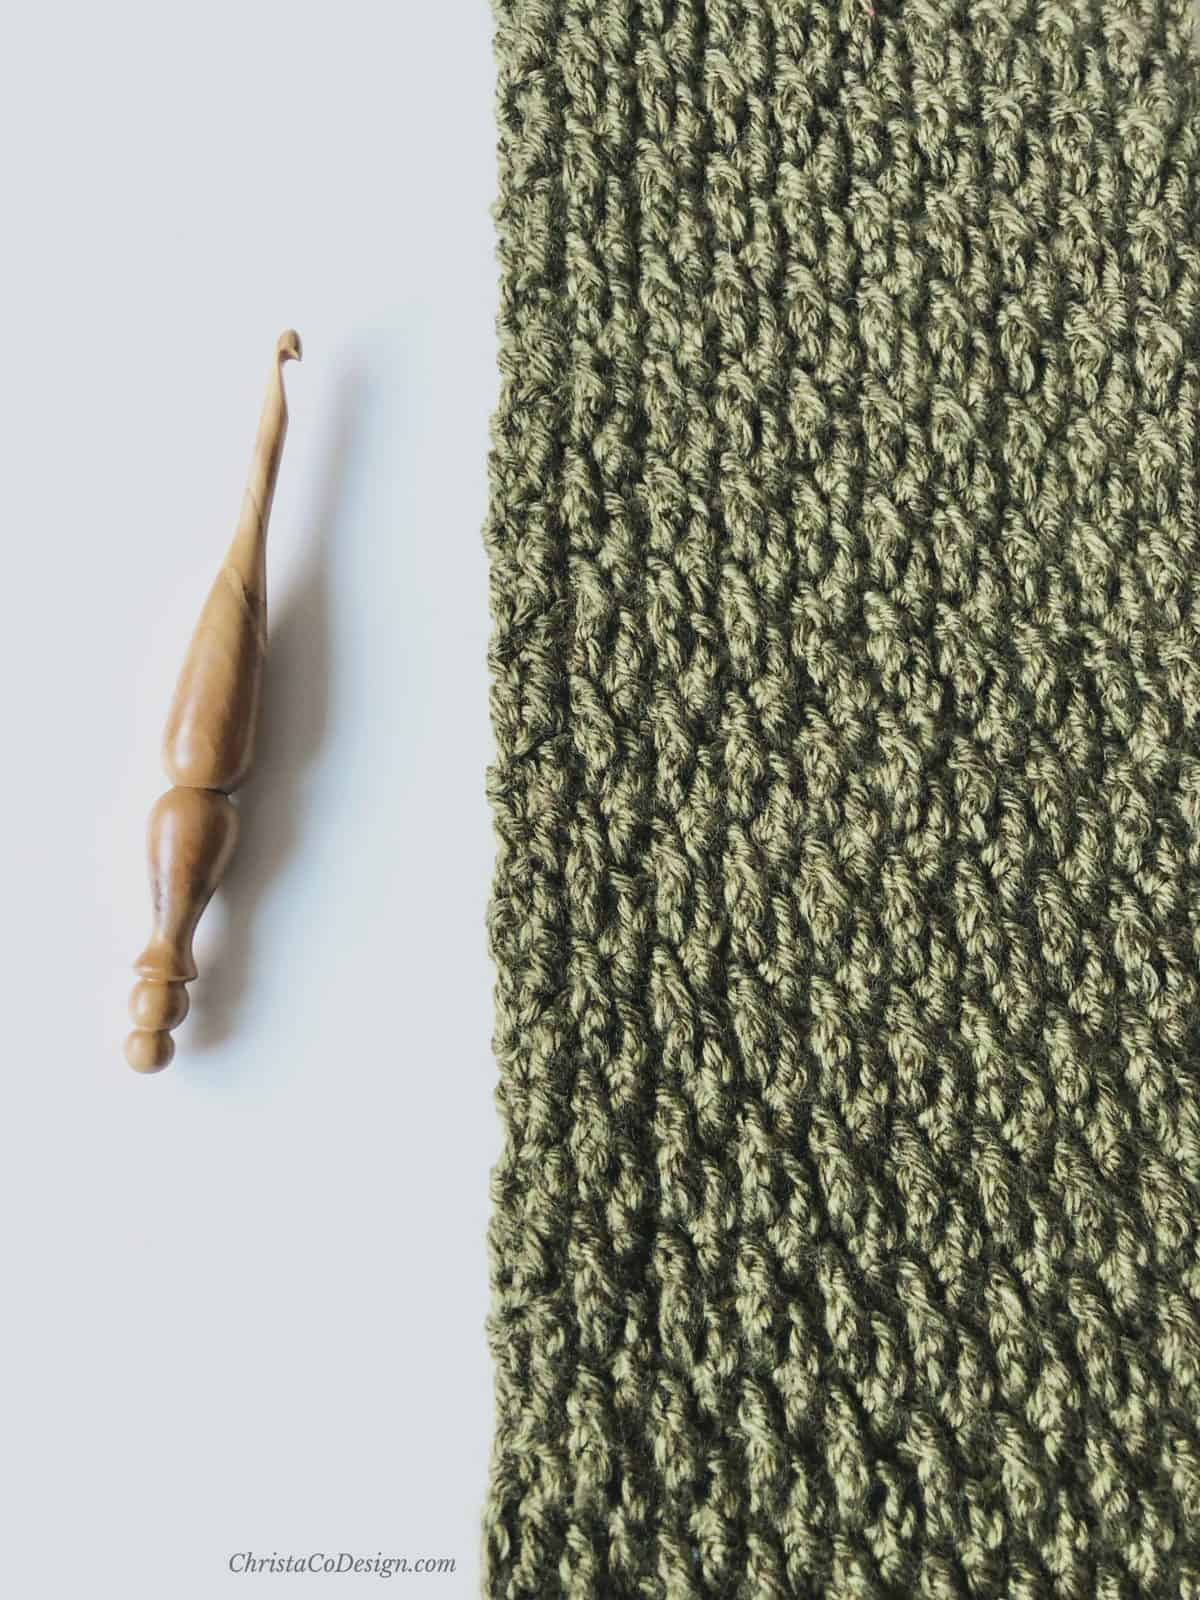 picture of wooden crochet hook and textured crochet scarf in green